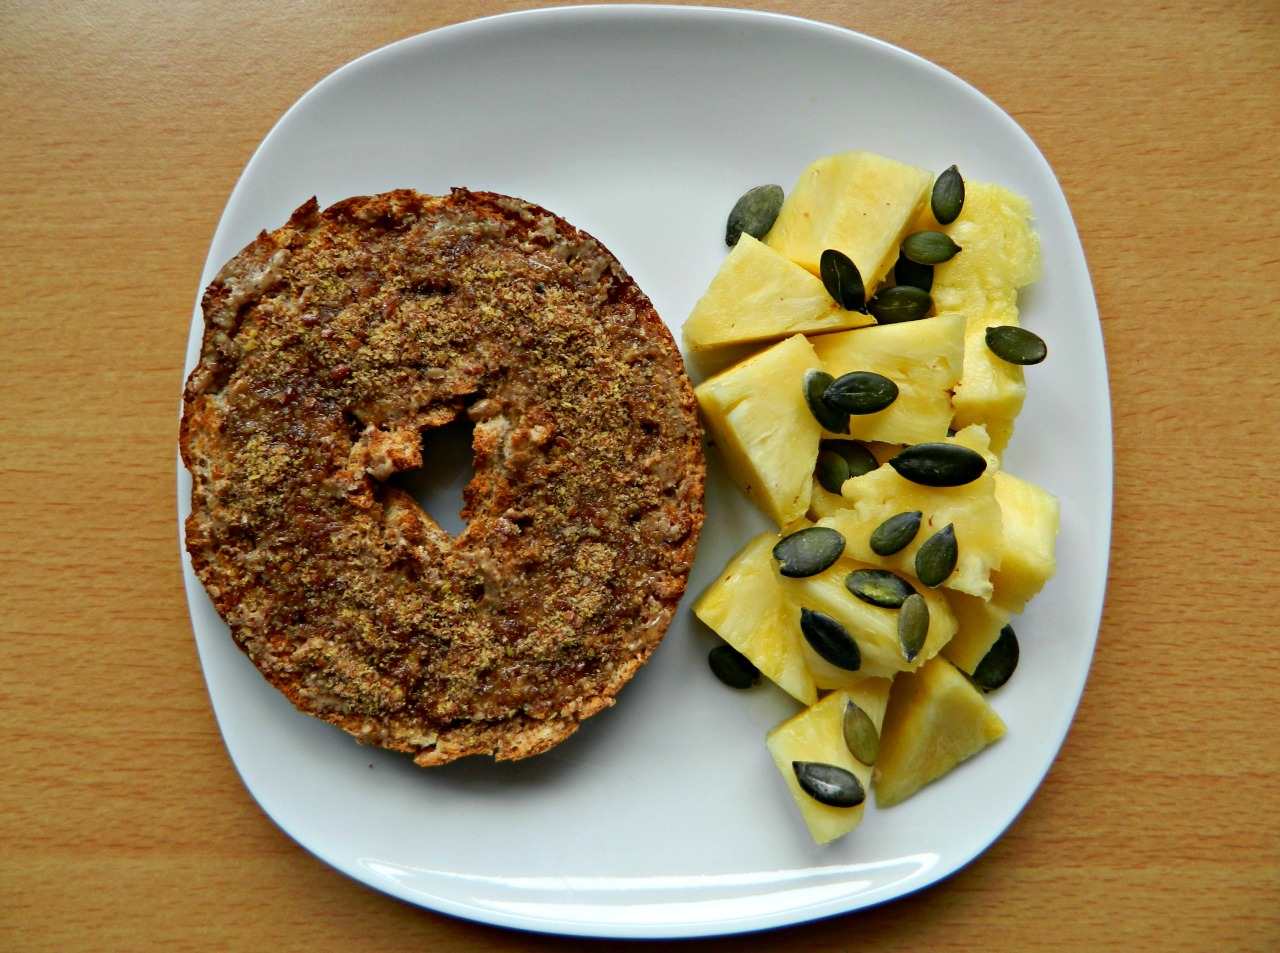 Half a wholewheat bagel with almond butter, ground flaxseed and agave, fresh pineapple and pumpkin seeds.